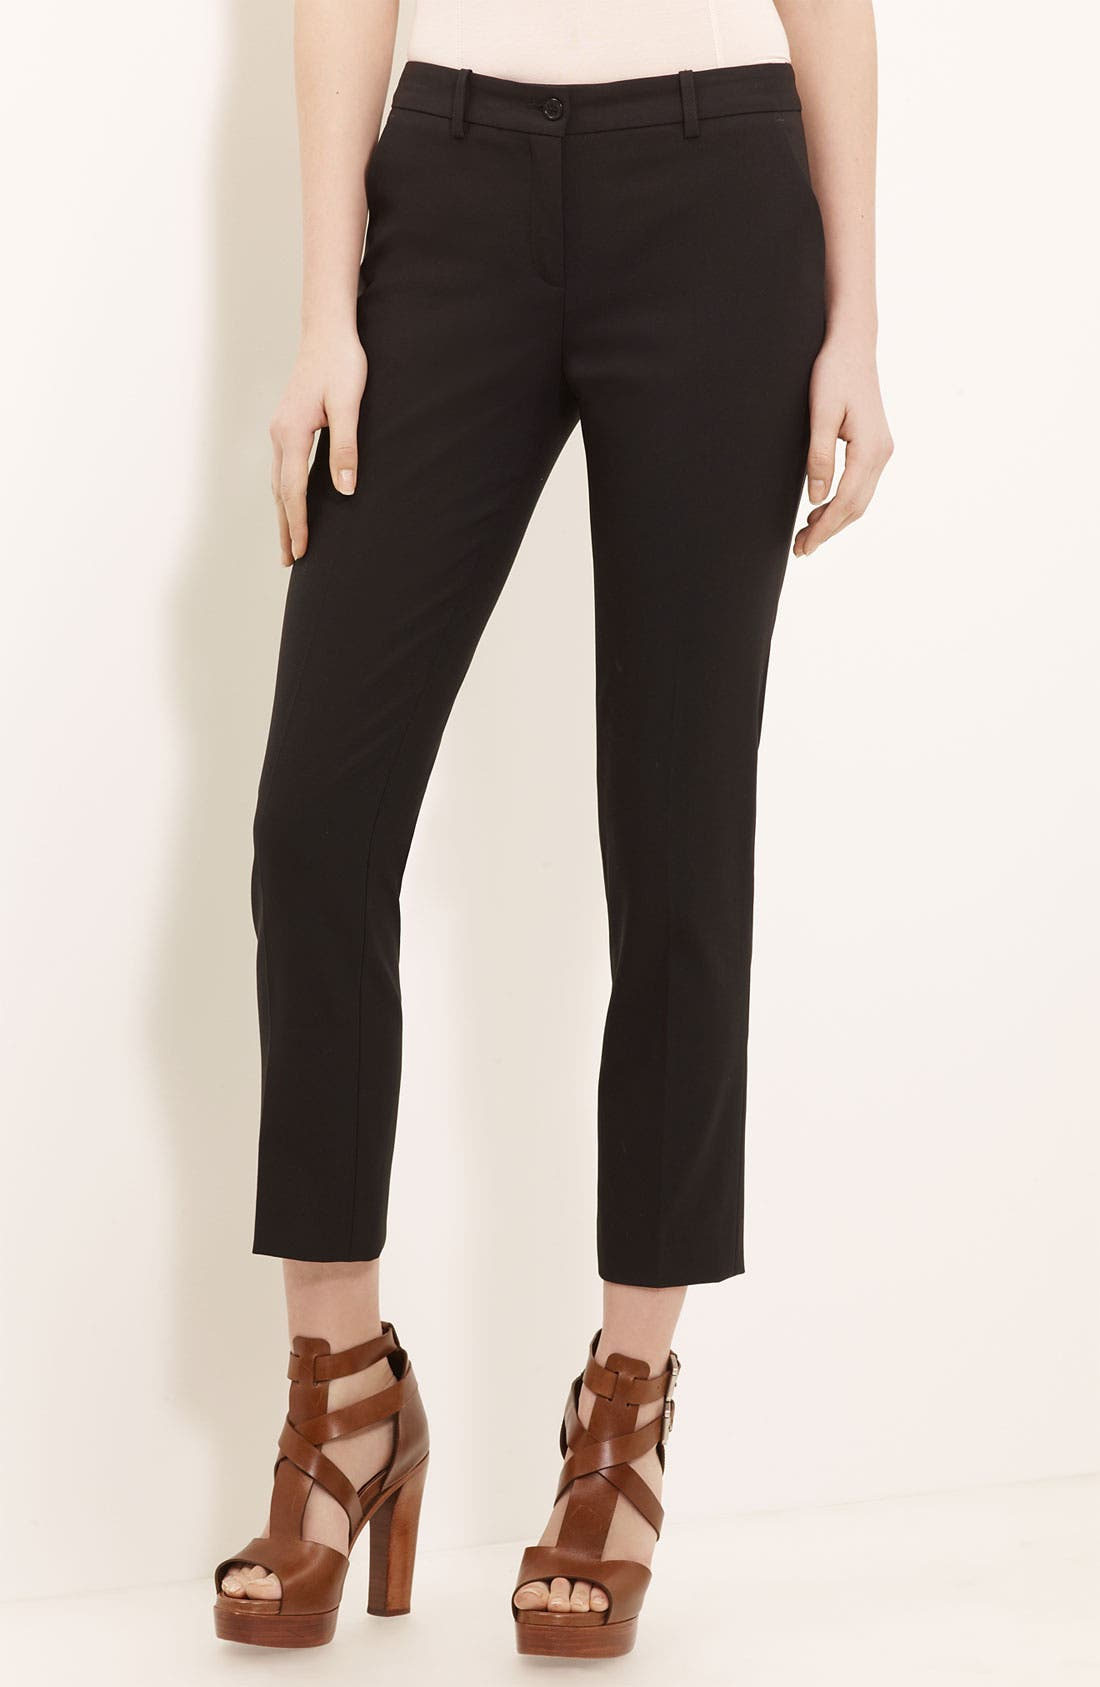 Alternate Image 1 Selected - Michael Kors 'Samantha' Skinny Pants